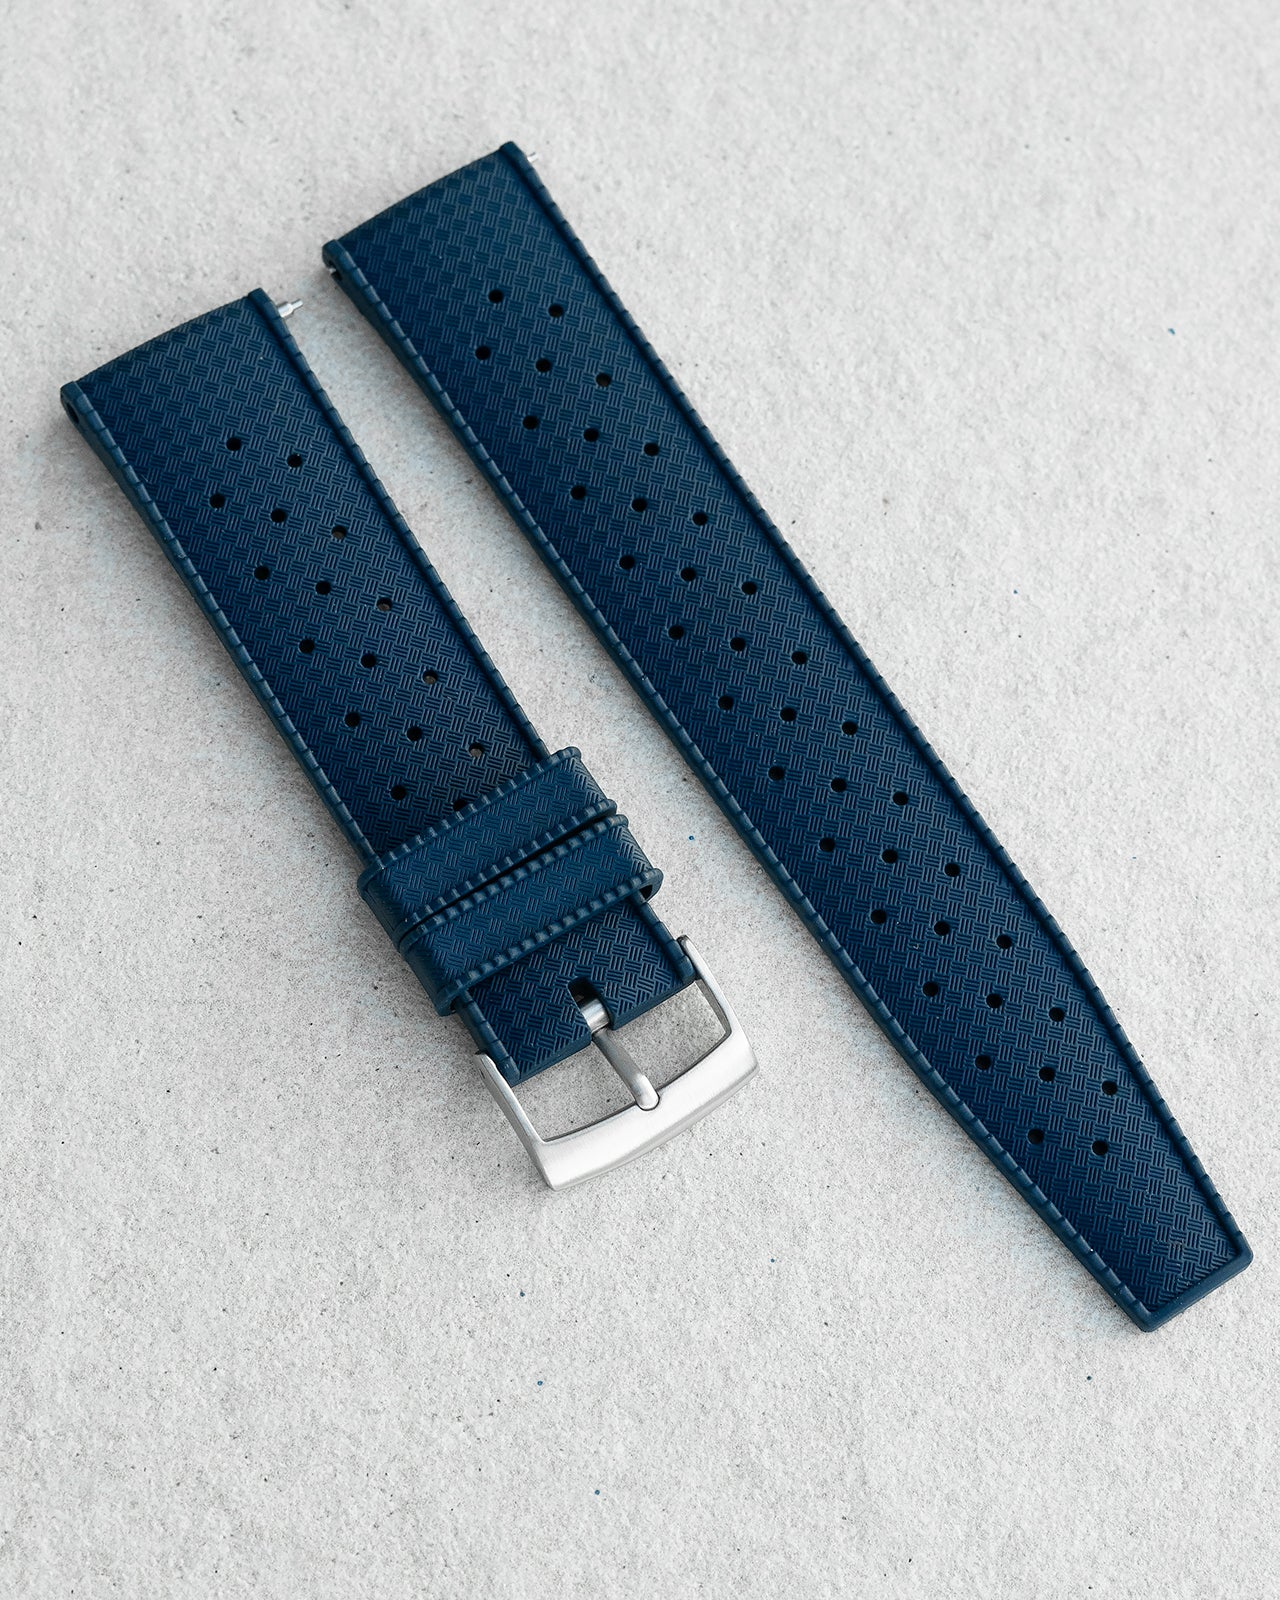 FKM RUBBER - TROPIC STRAP (NAVY)